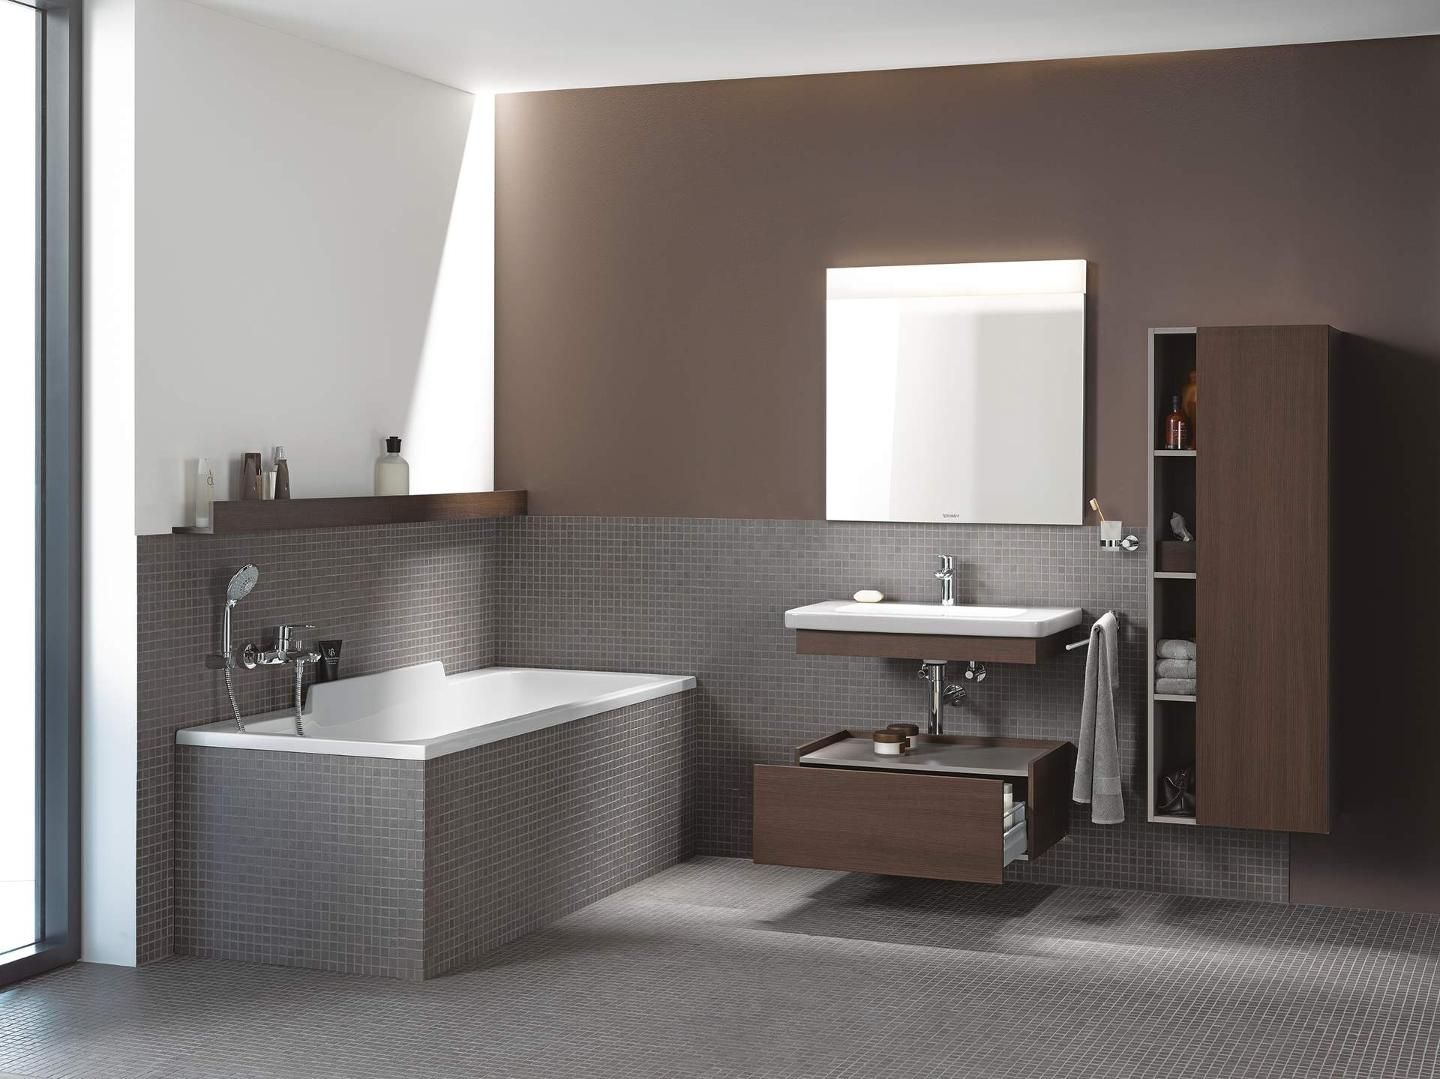 Durastyle Tall Cabinet And Low Cabinet Both In Chestnut Dark And Wall Mounted Designed By Mat Modern Bathroom Vanity Luxury Bathroom Vanities Bathroom Design